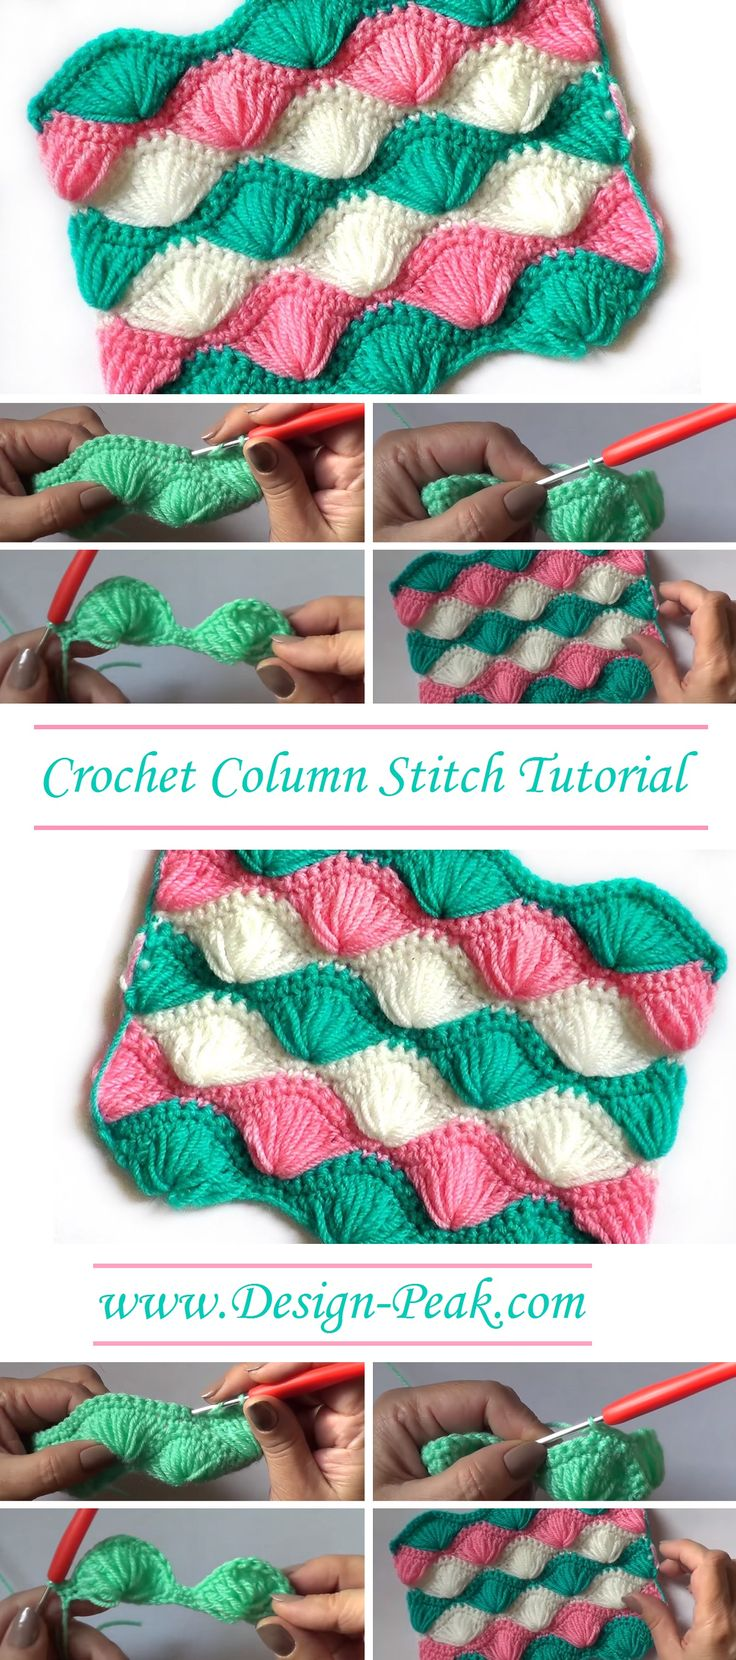 Crochet Column Stitch Tutorial